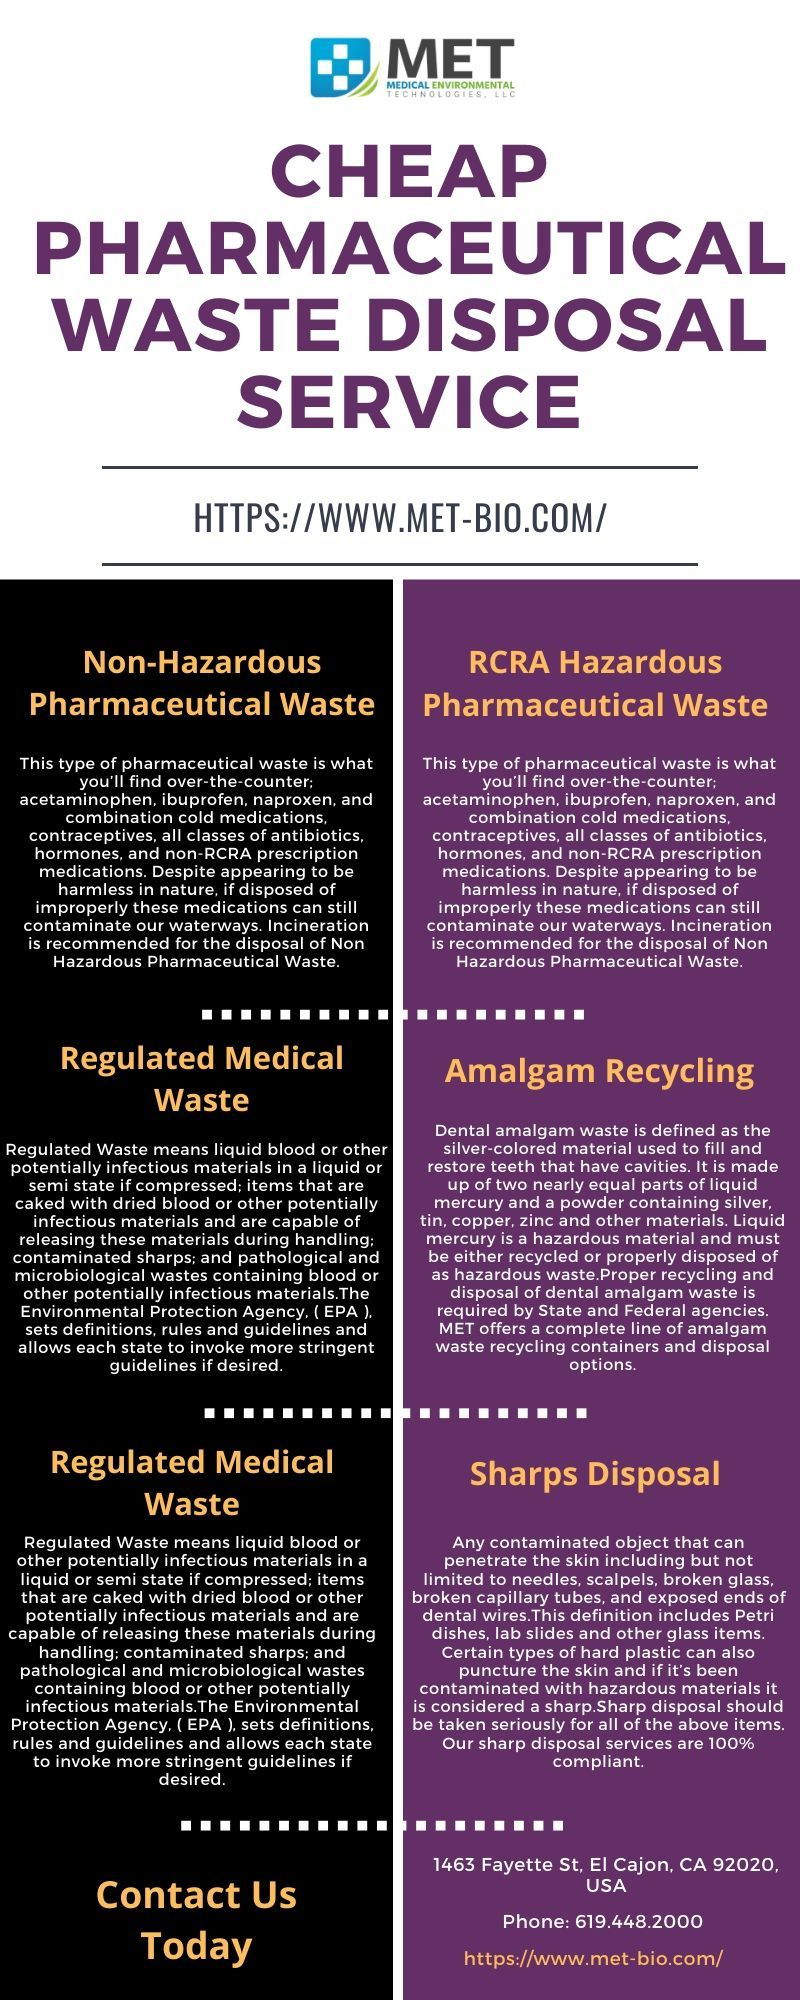 Pin by Met Bio on Medical Waste Management in 2020